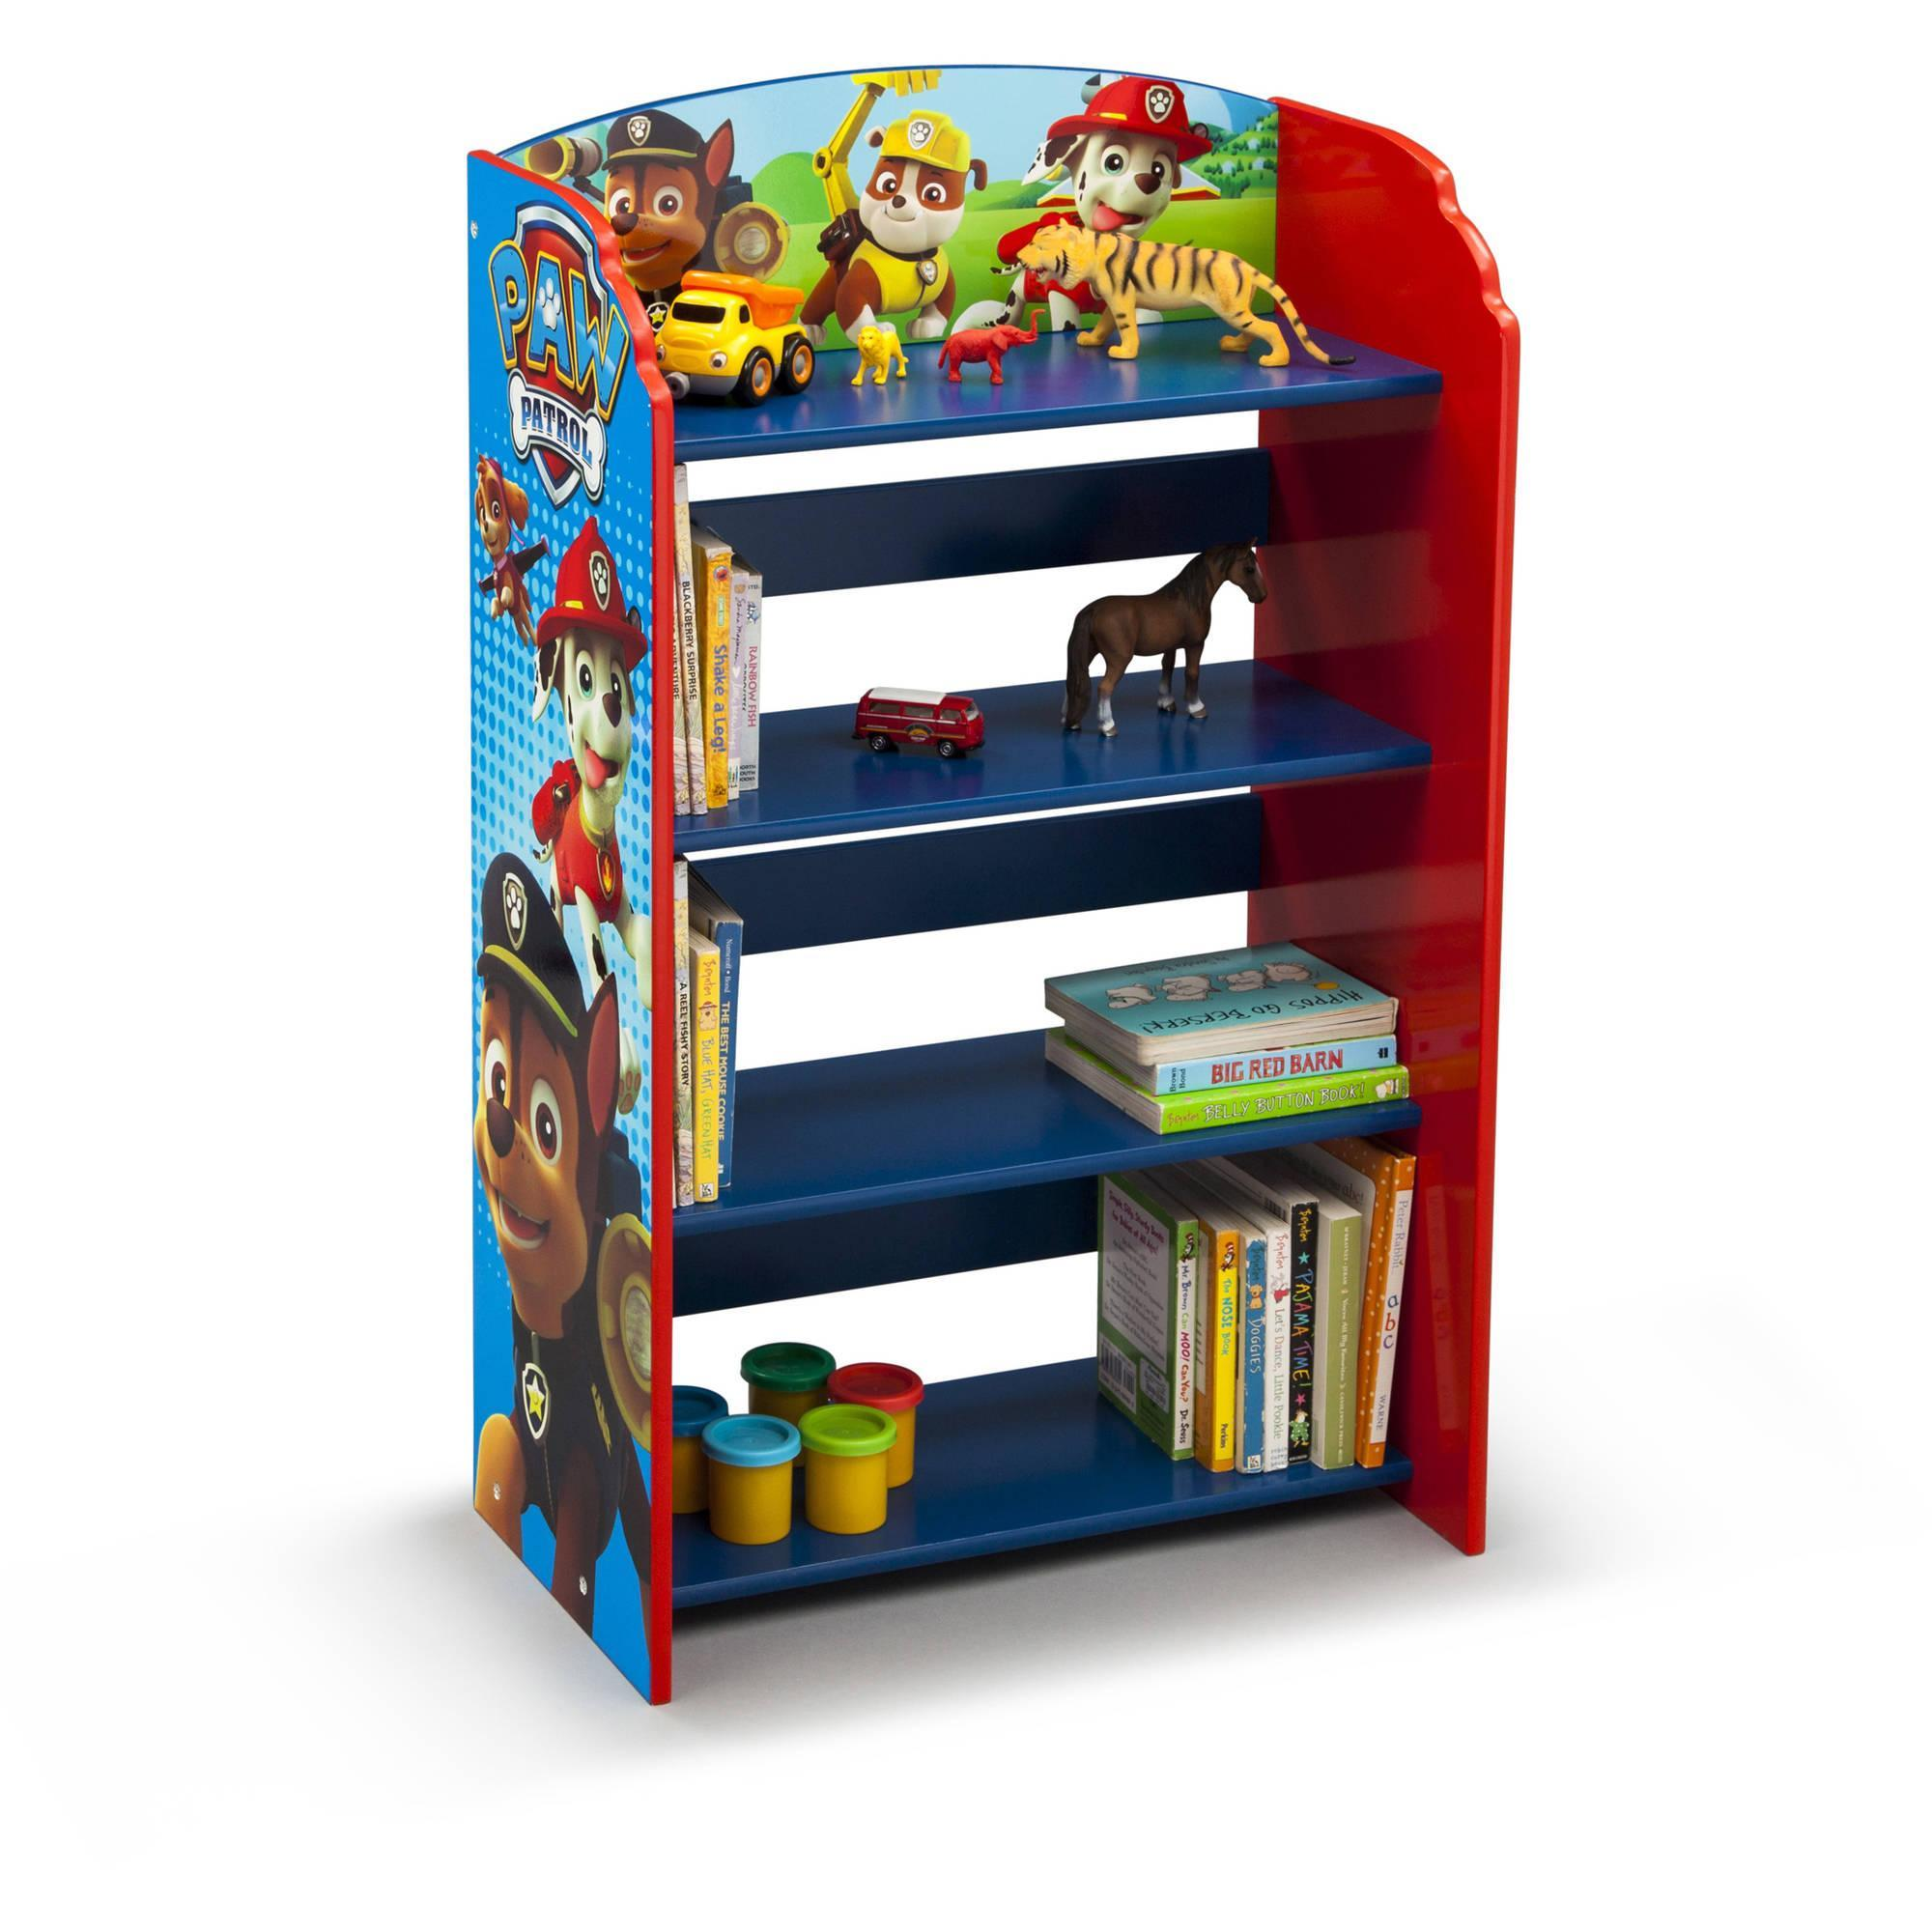 Delta Children PAW Patrol Bookshelf  Just $39.98 Down From $69.98 At Walmart!